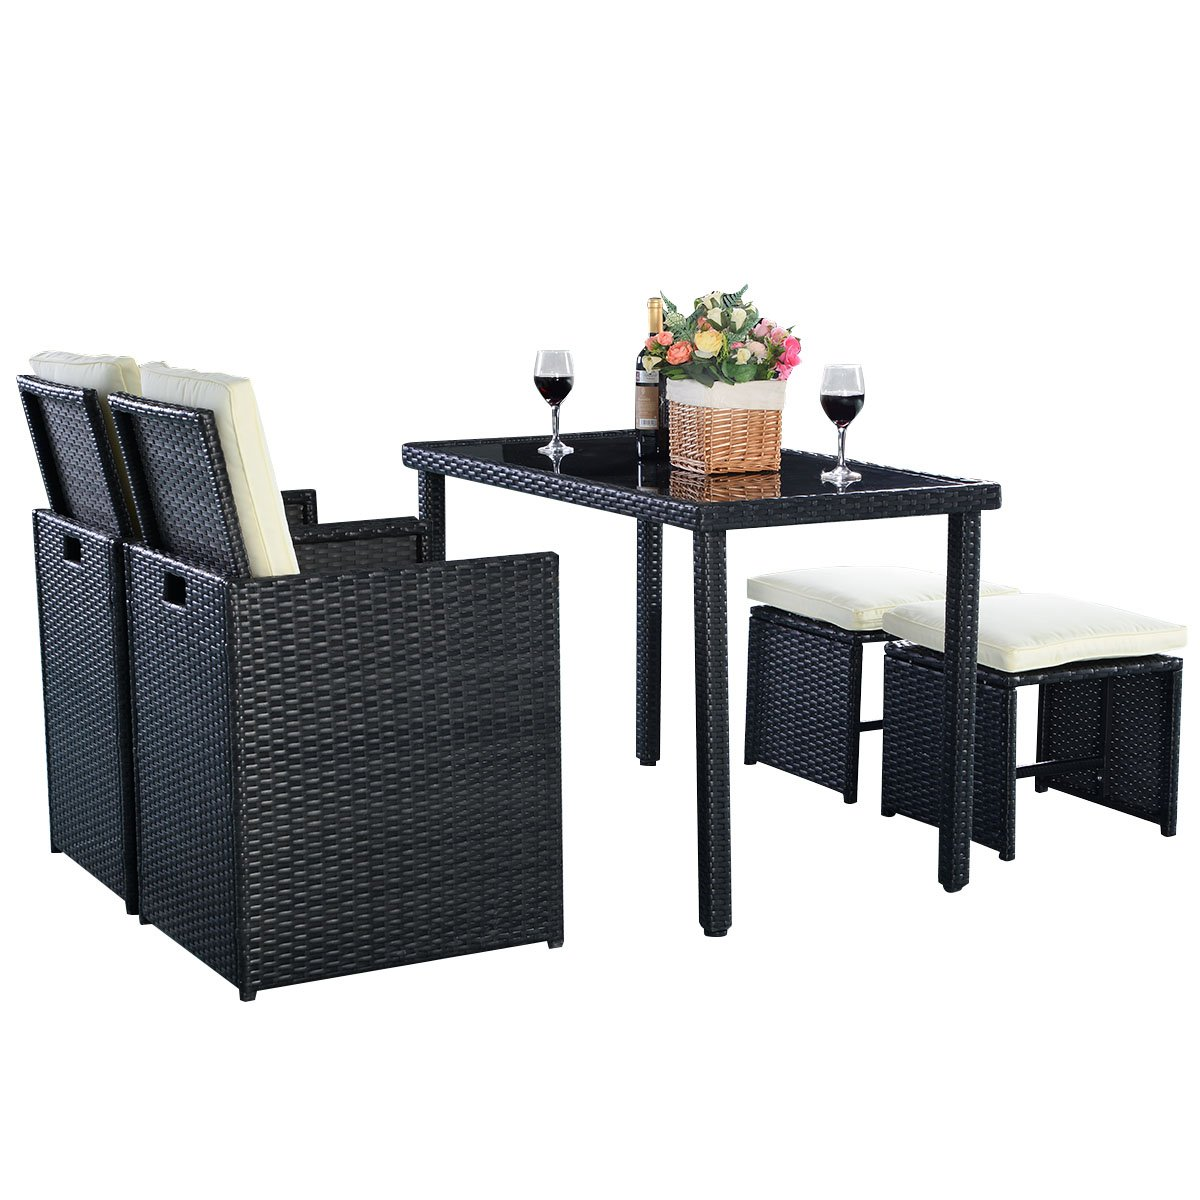 esstisch set gnstig polyrattan gartenm bel esstisch set. Black Bedroom Furniture Sets. Home Design Ideas